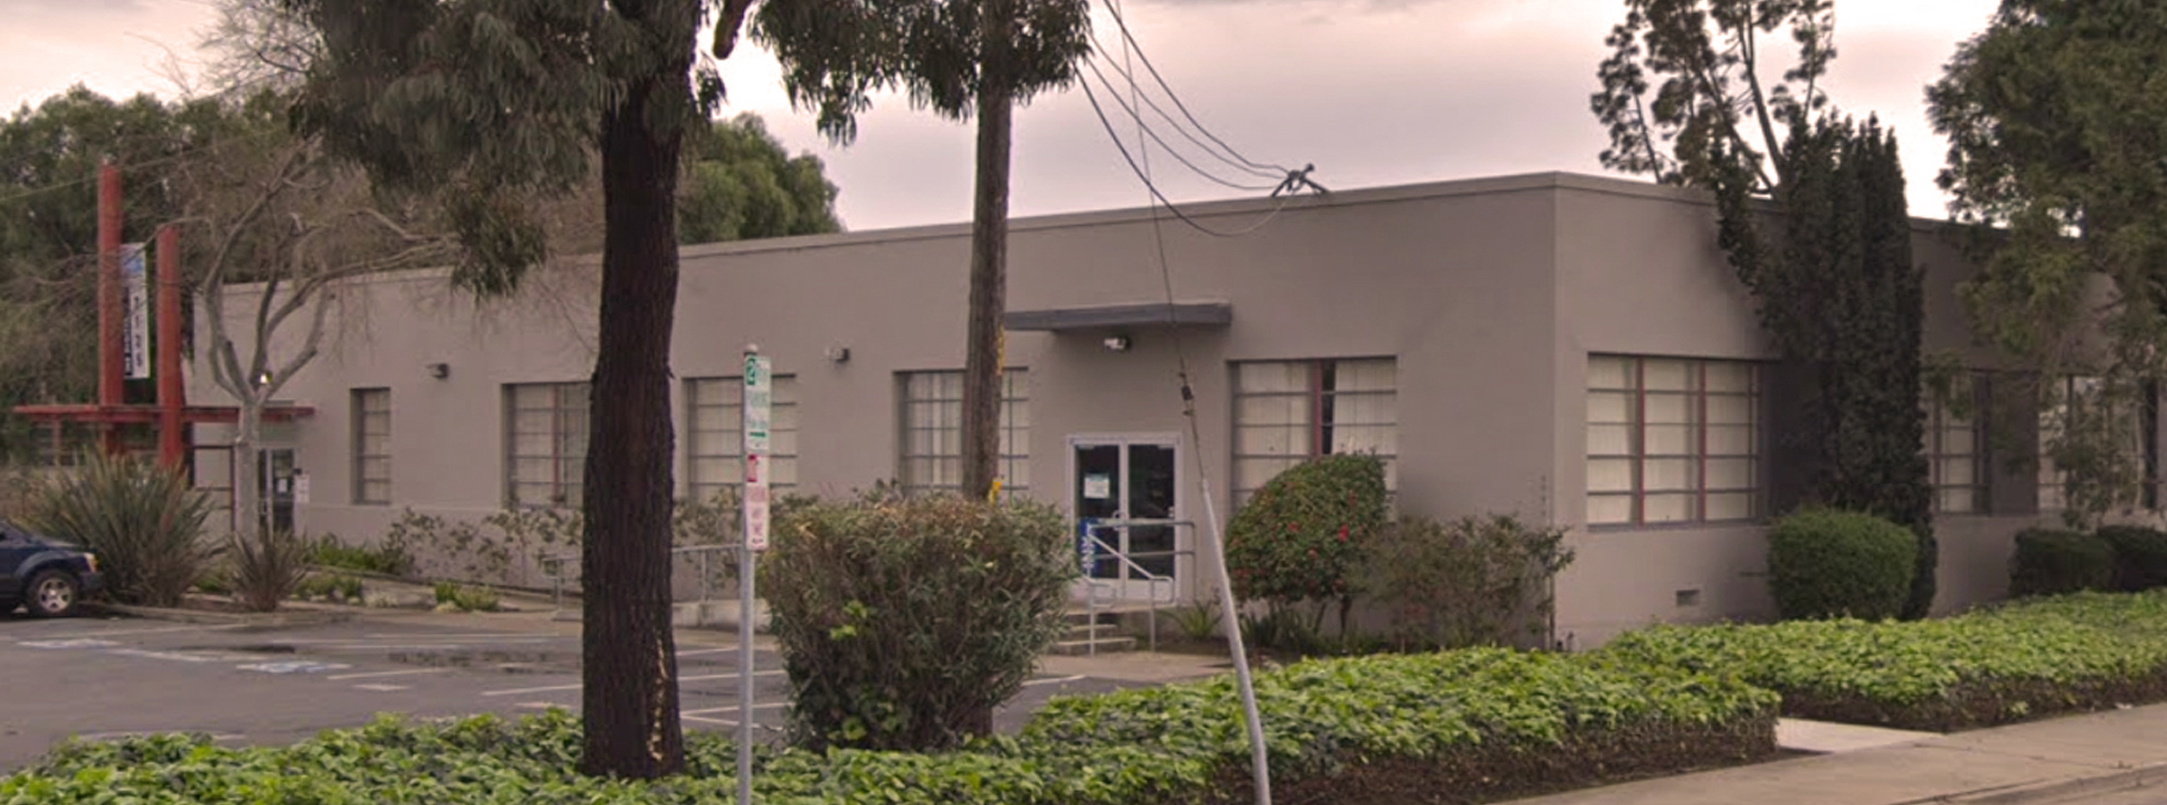 Adult Day Care Center, San Leandro